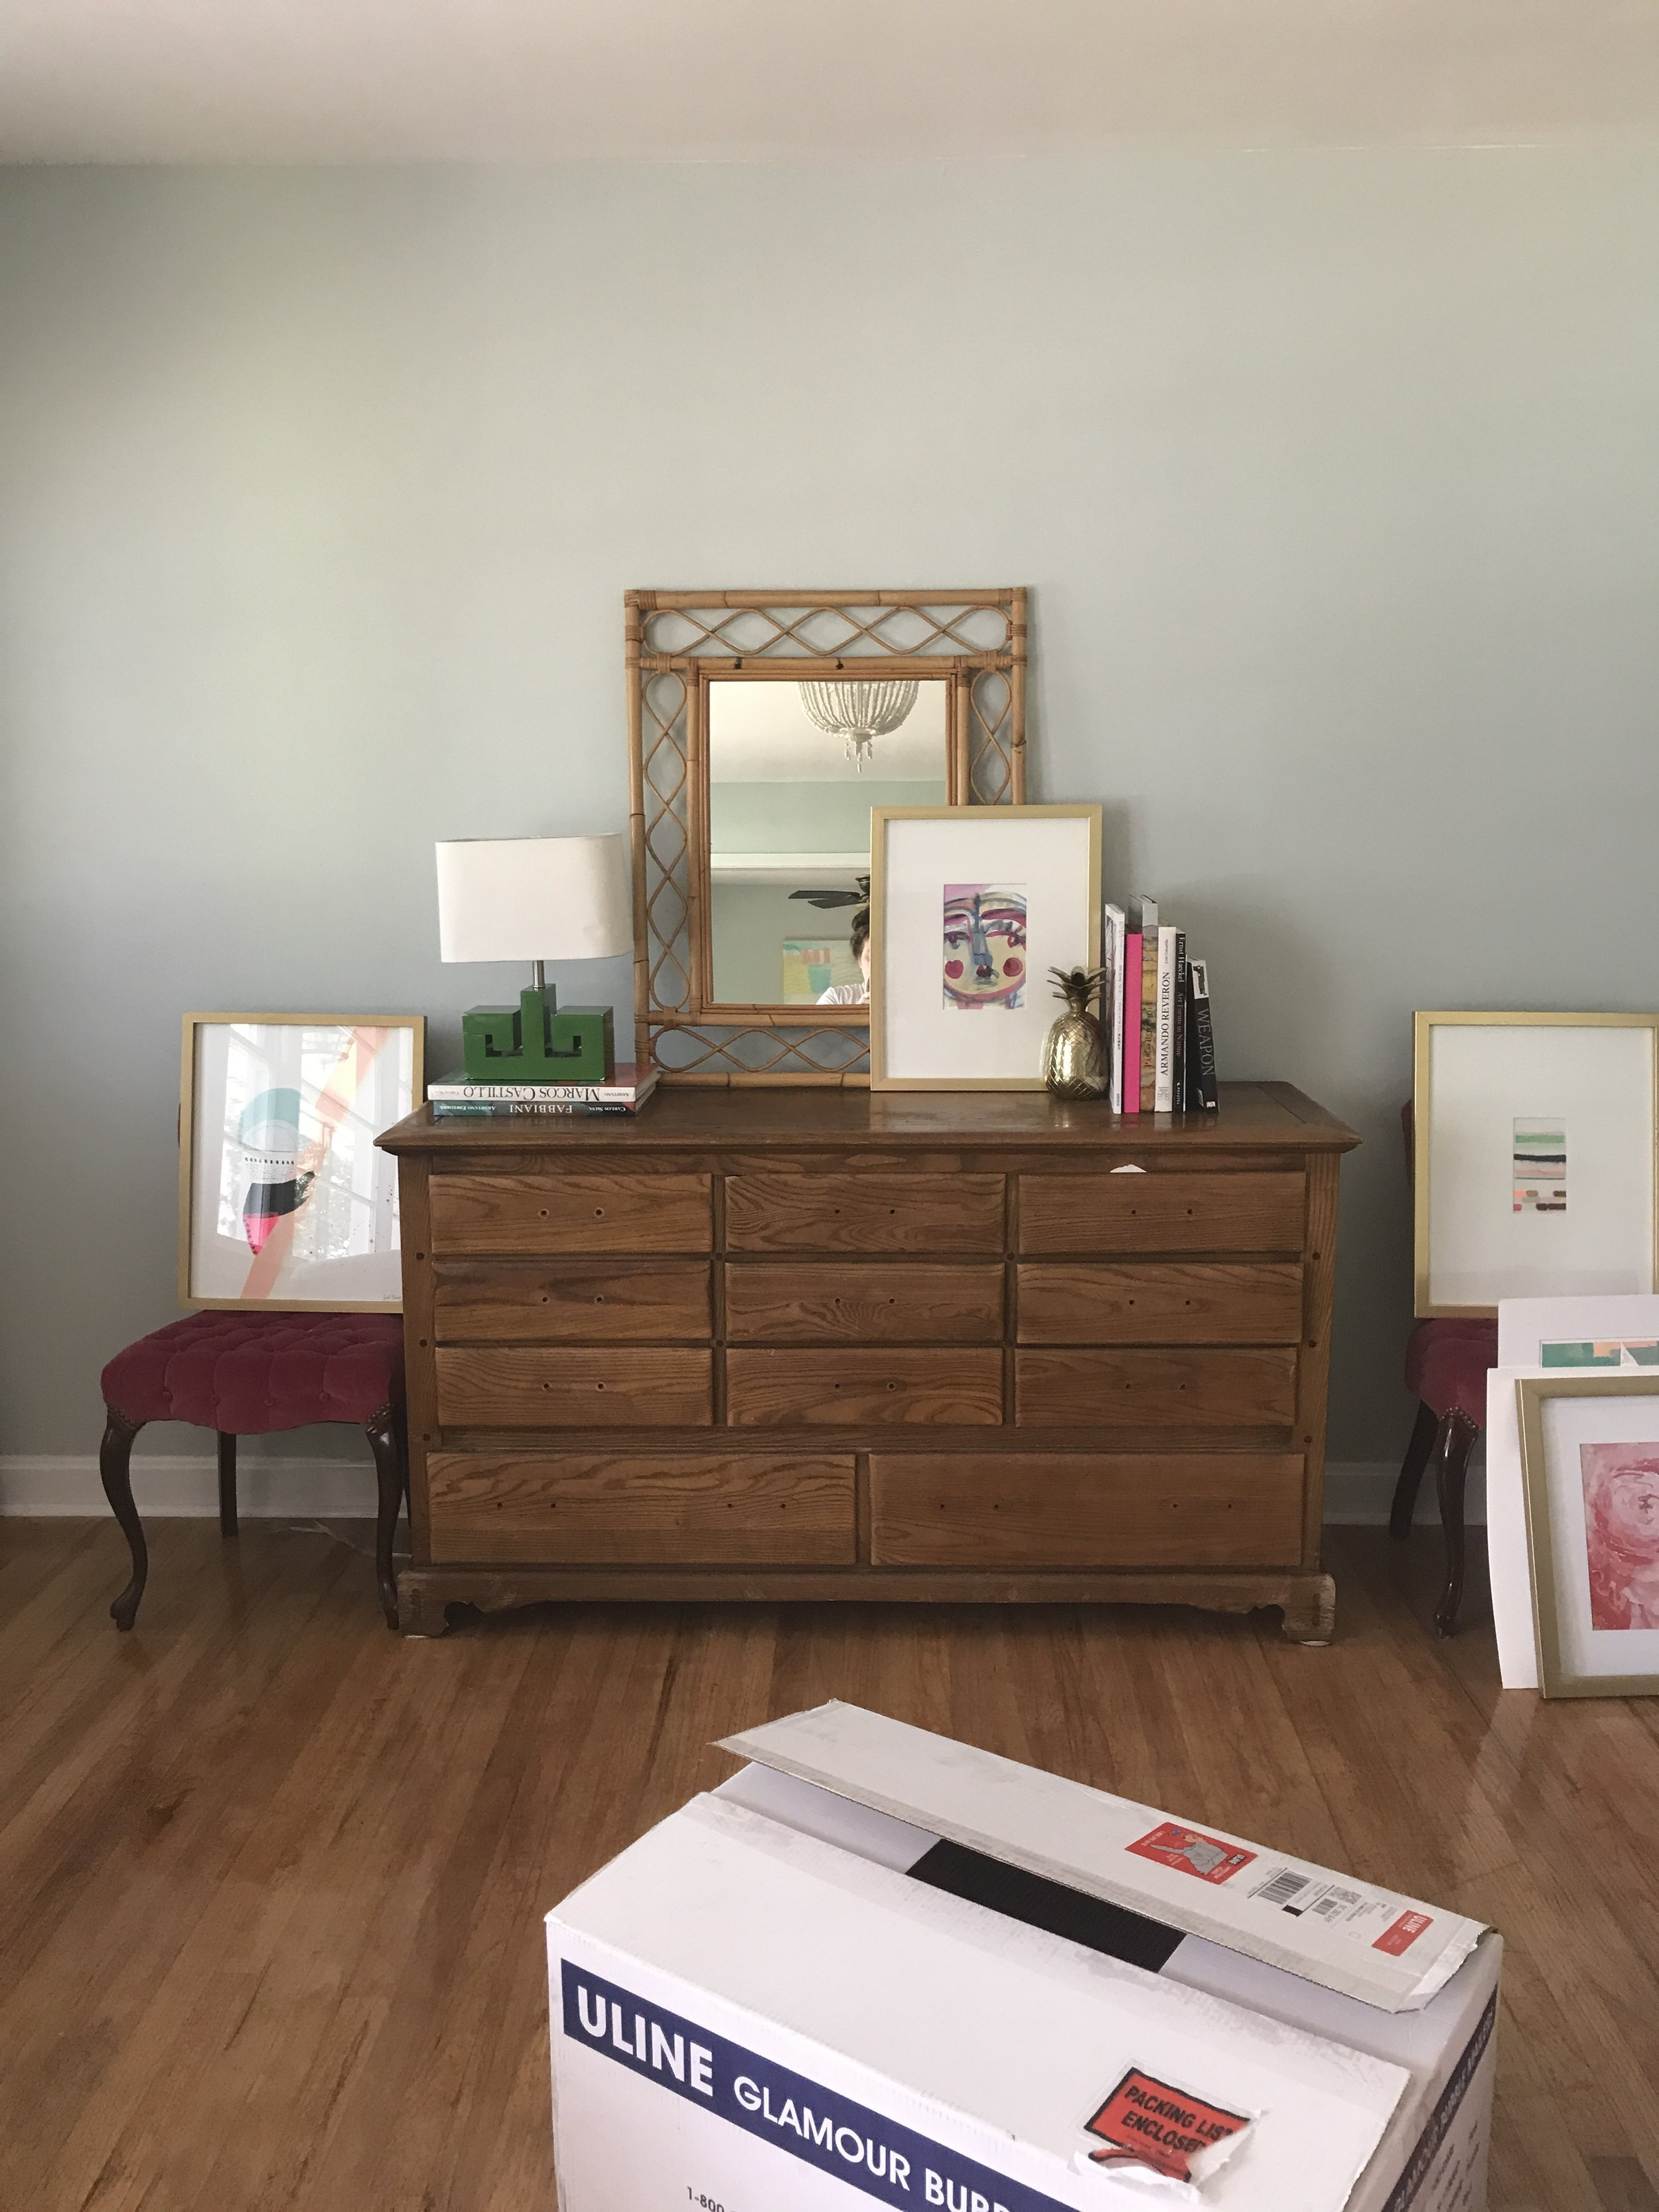 The dresser, before, in it's natural habitat.